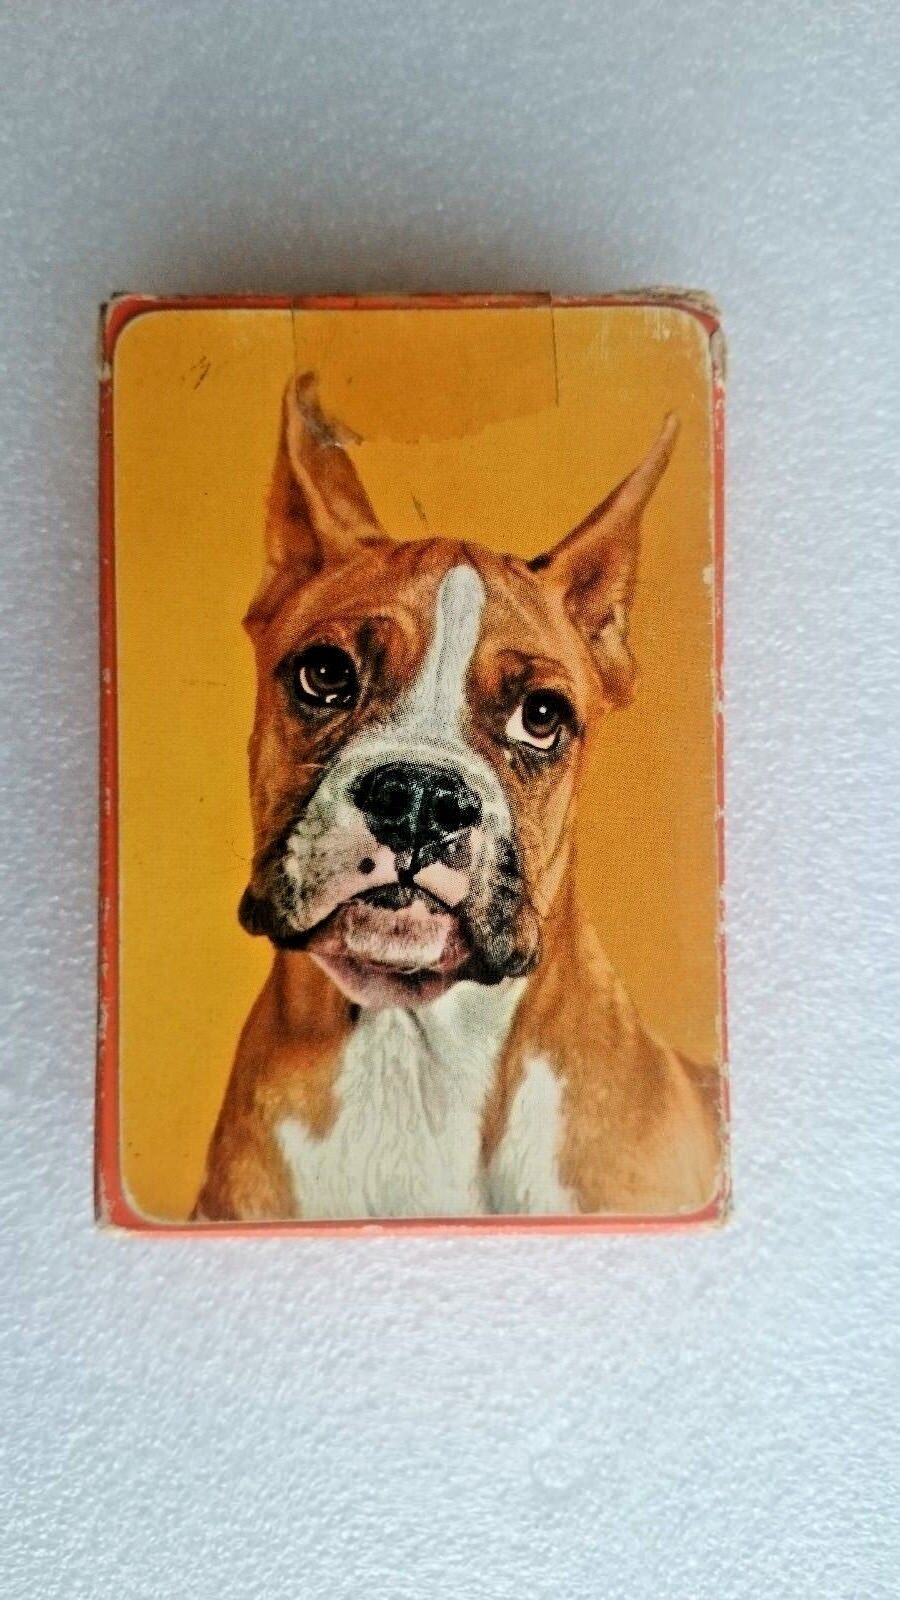 Vintage 1950s  Boxer Dog Playing Cards by Alf Cooke